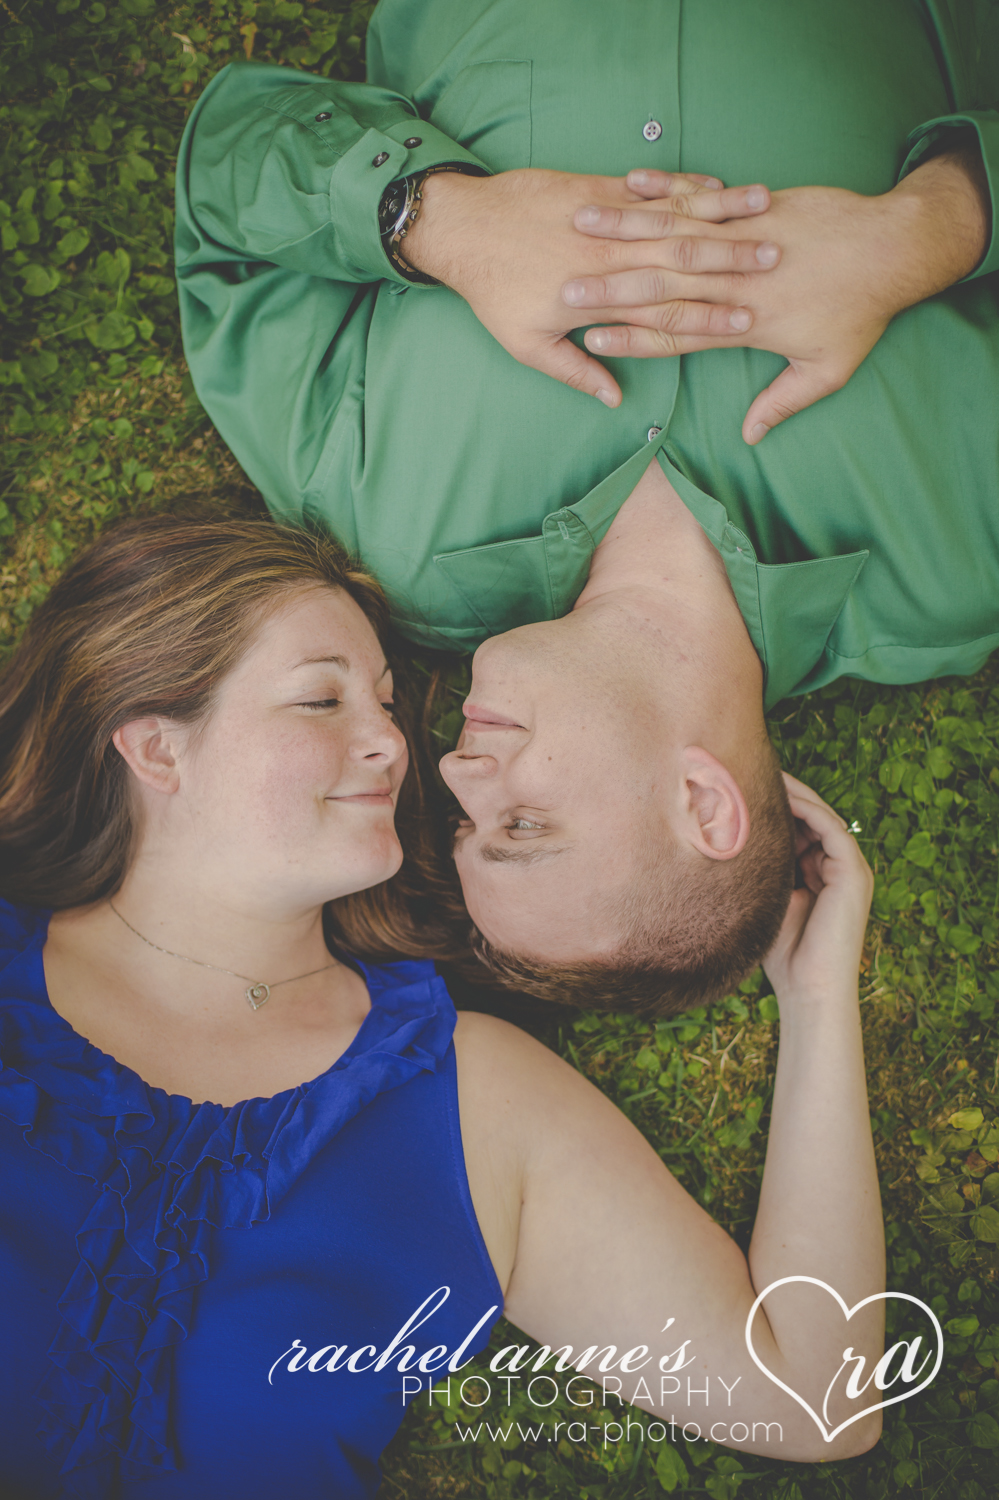 013-ELM-DUBOIS-ENGAGEMENT-PHOTOS.jpg